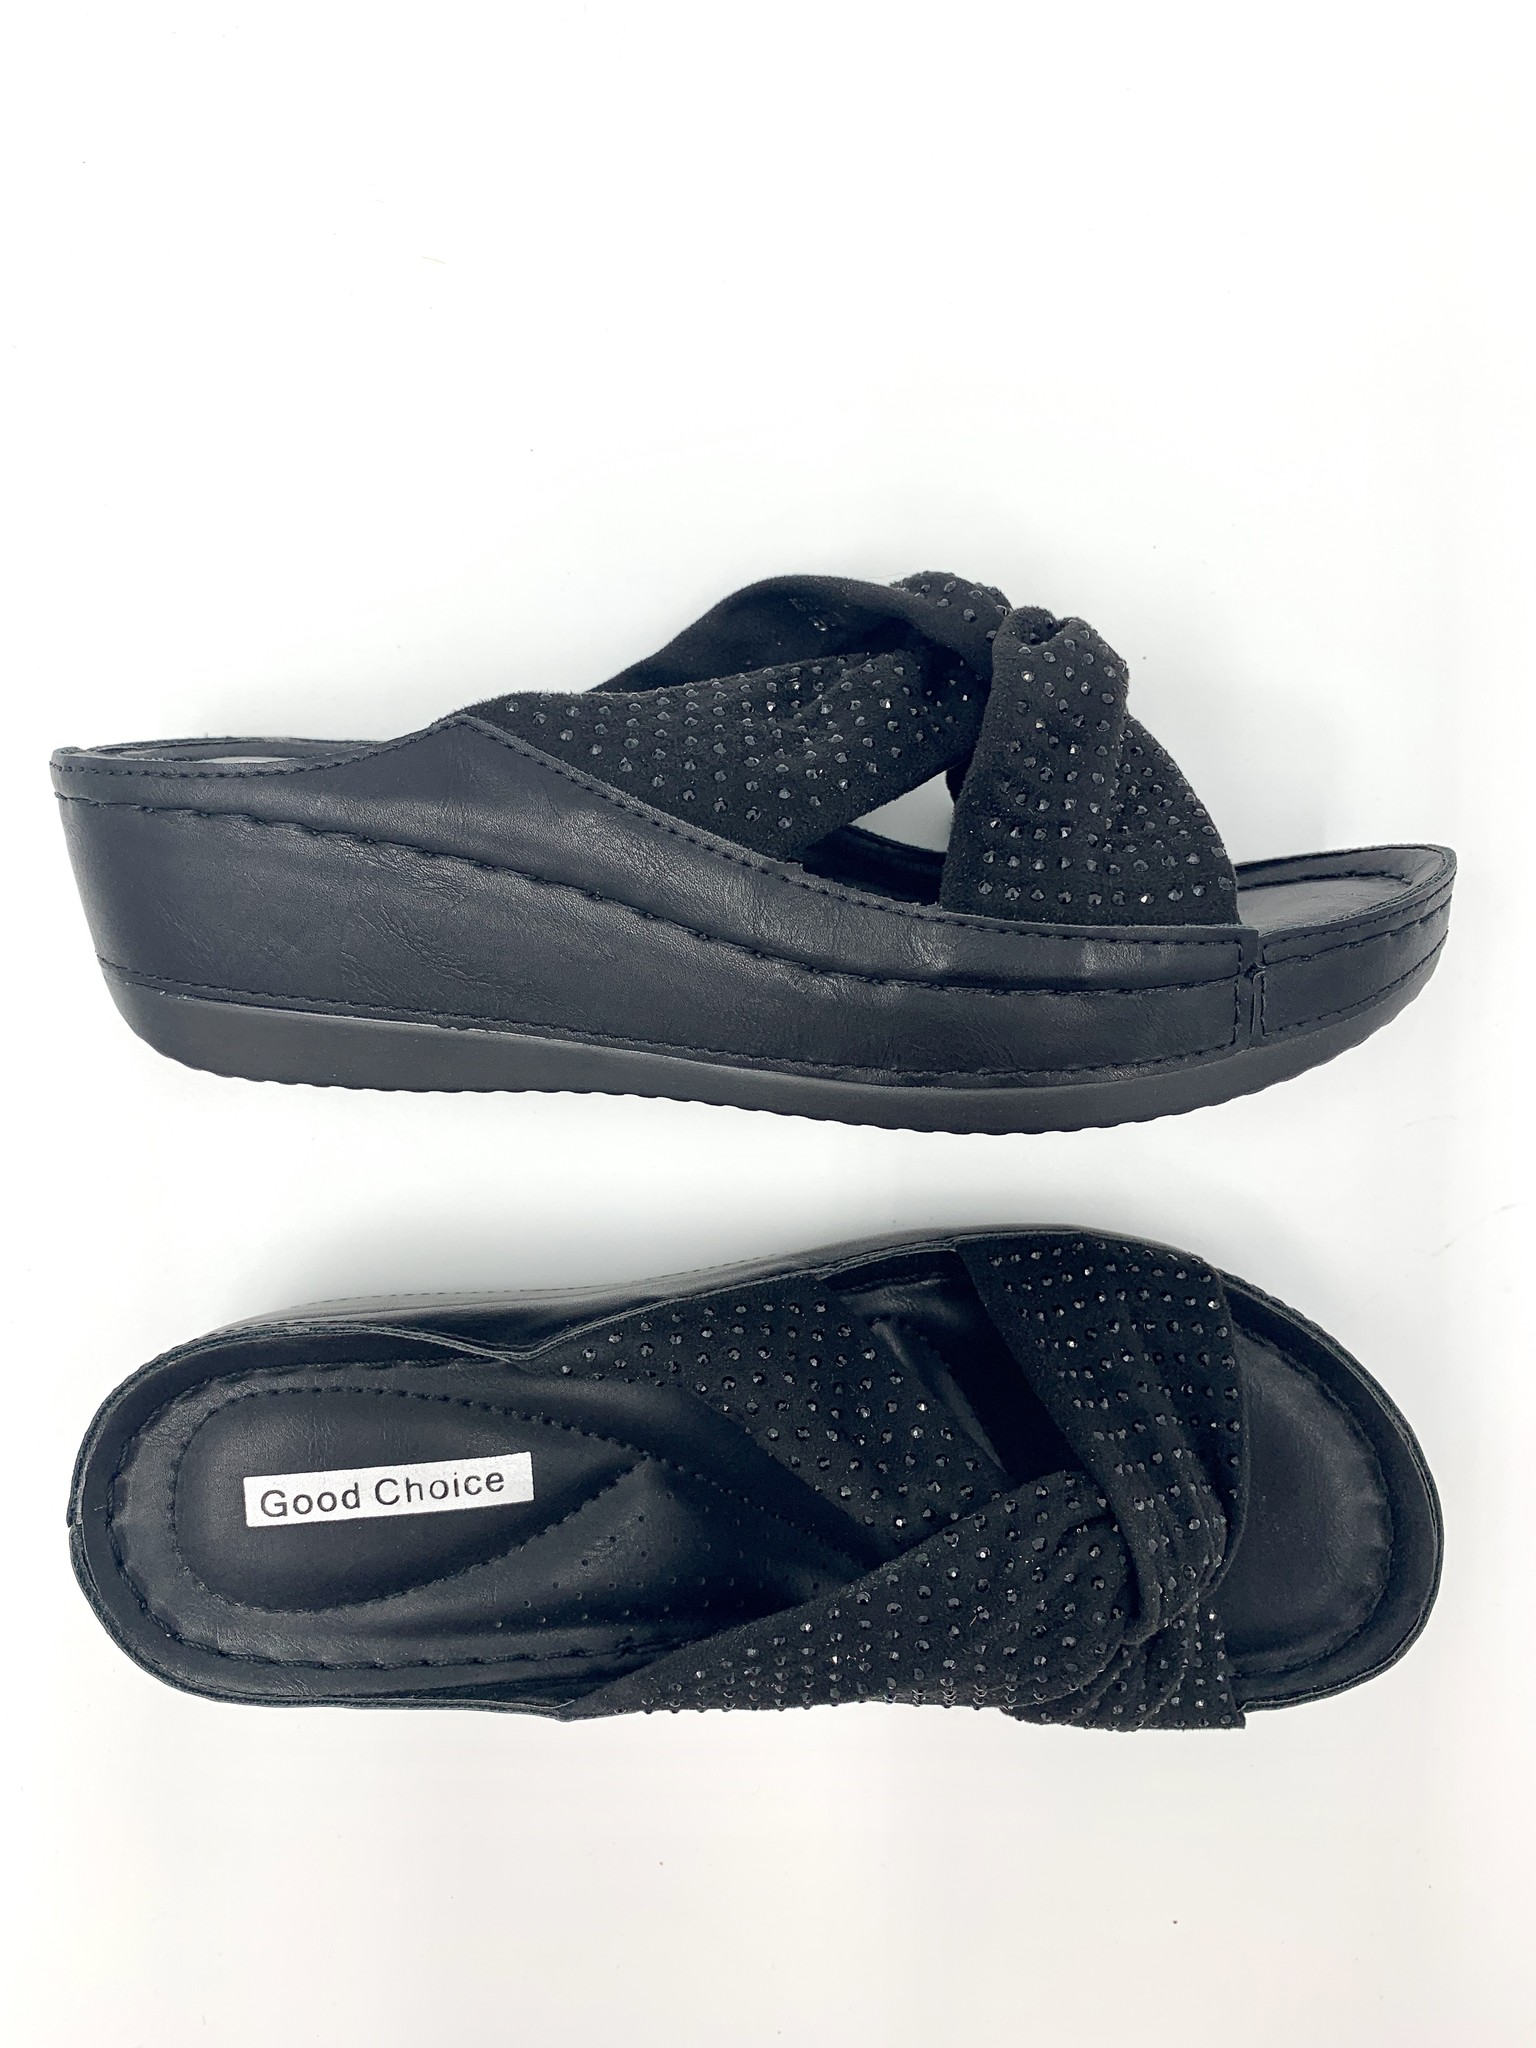 GC Glenna -Black